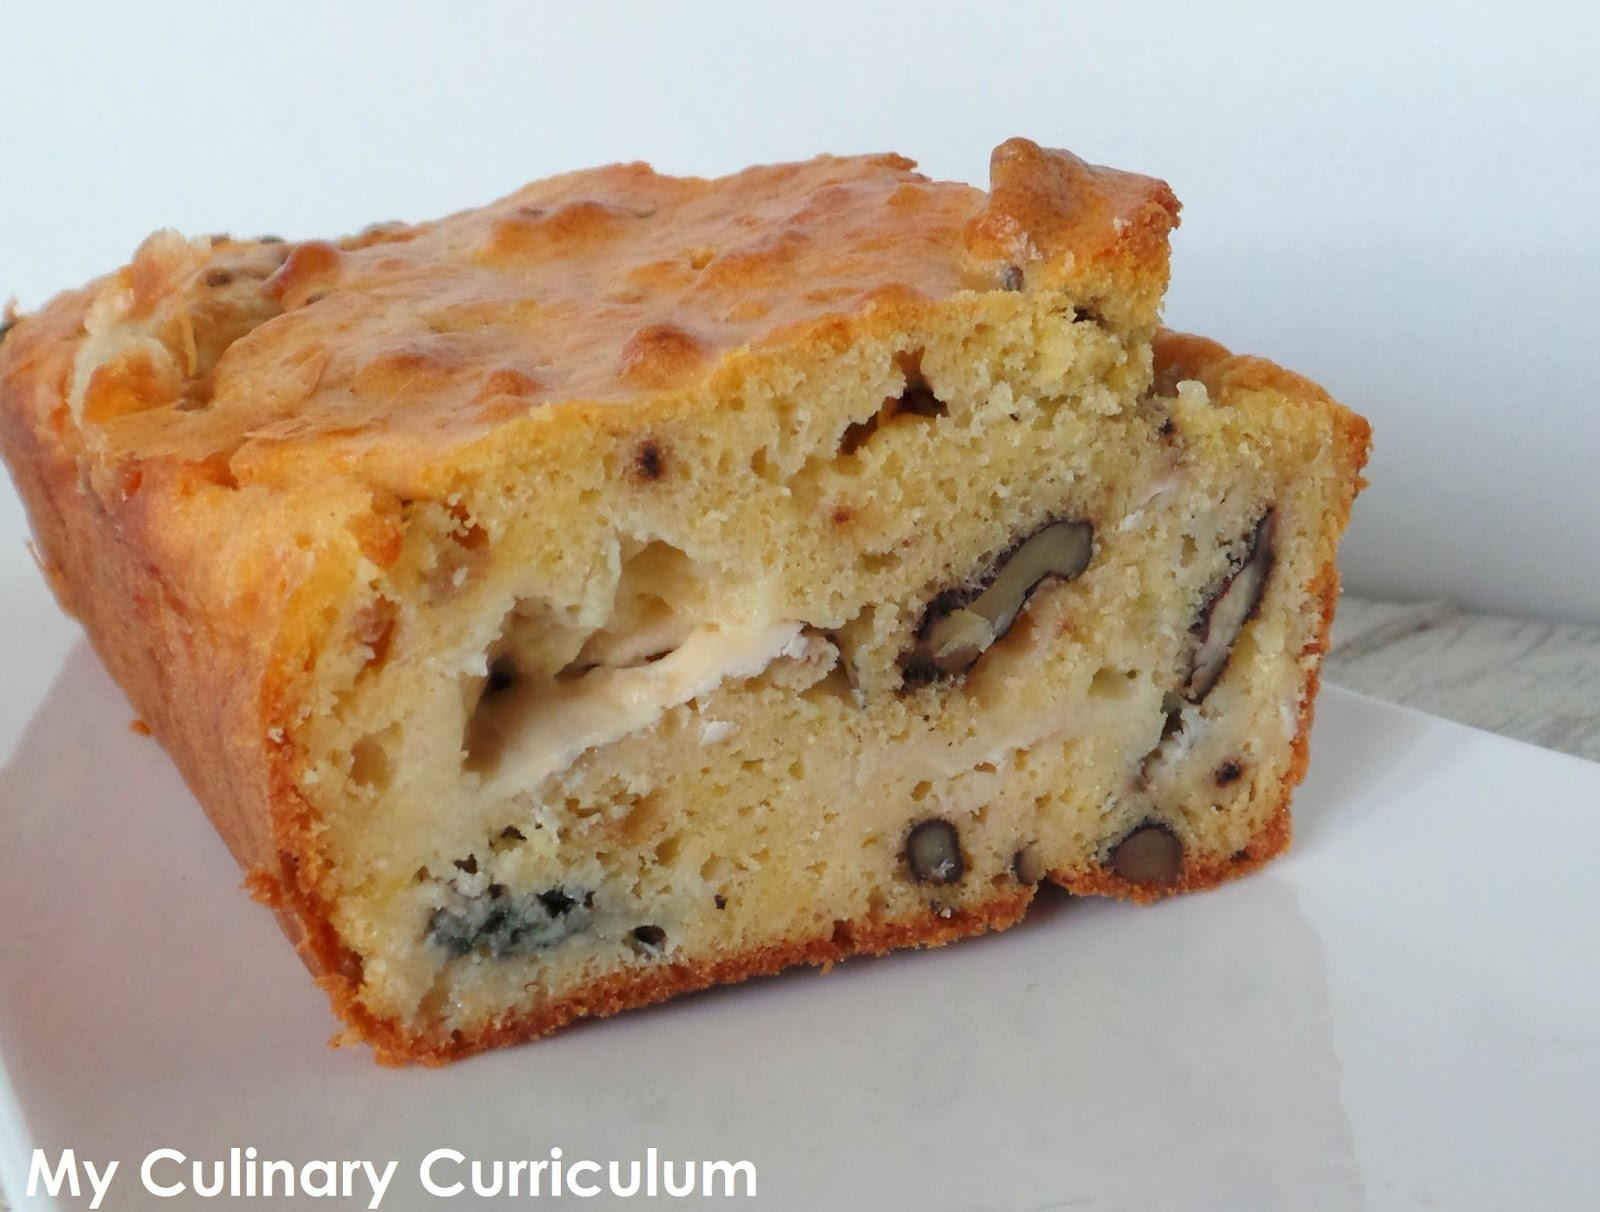 my culinary curriculum cake roquefort noix roquefort blue cheese and walnuts cake. Black Bedroom Furniture Sets. Home Design Ideas